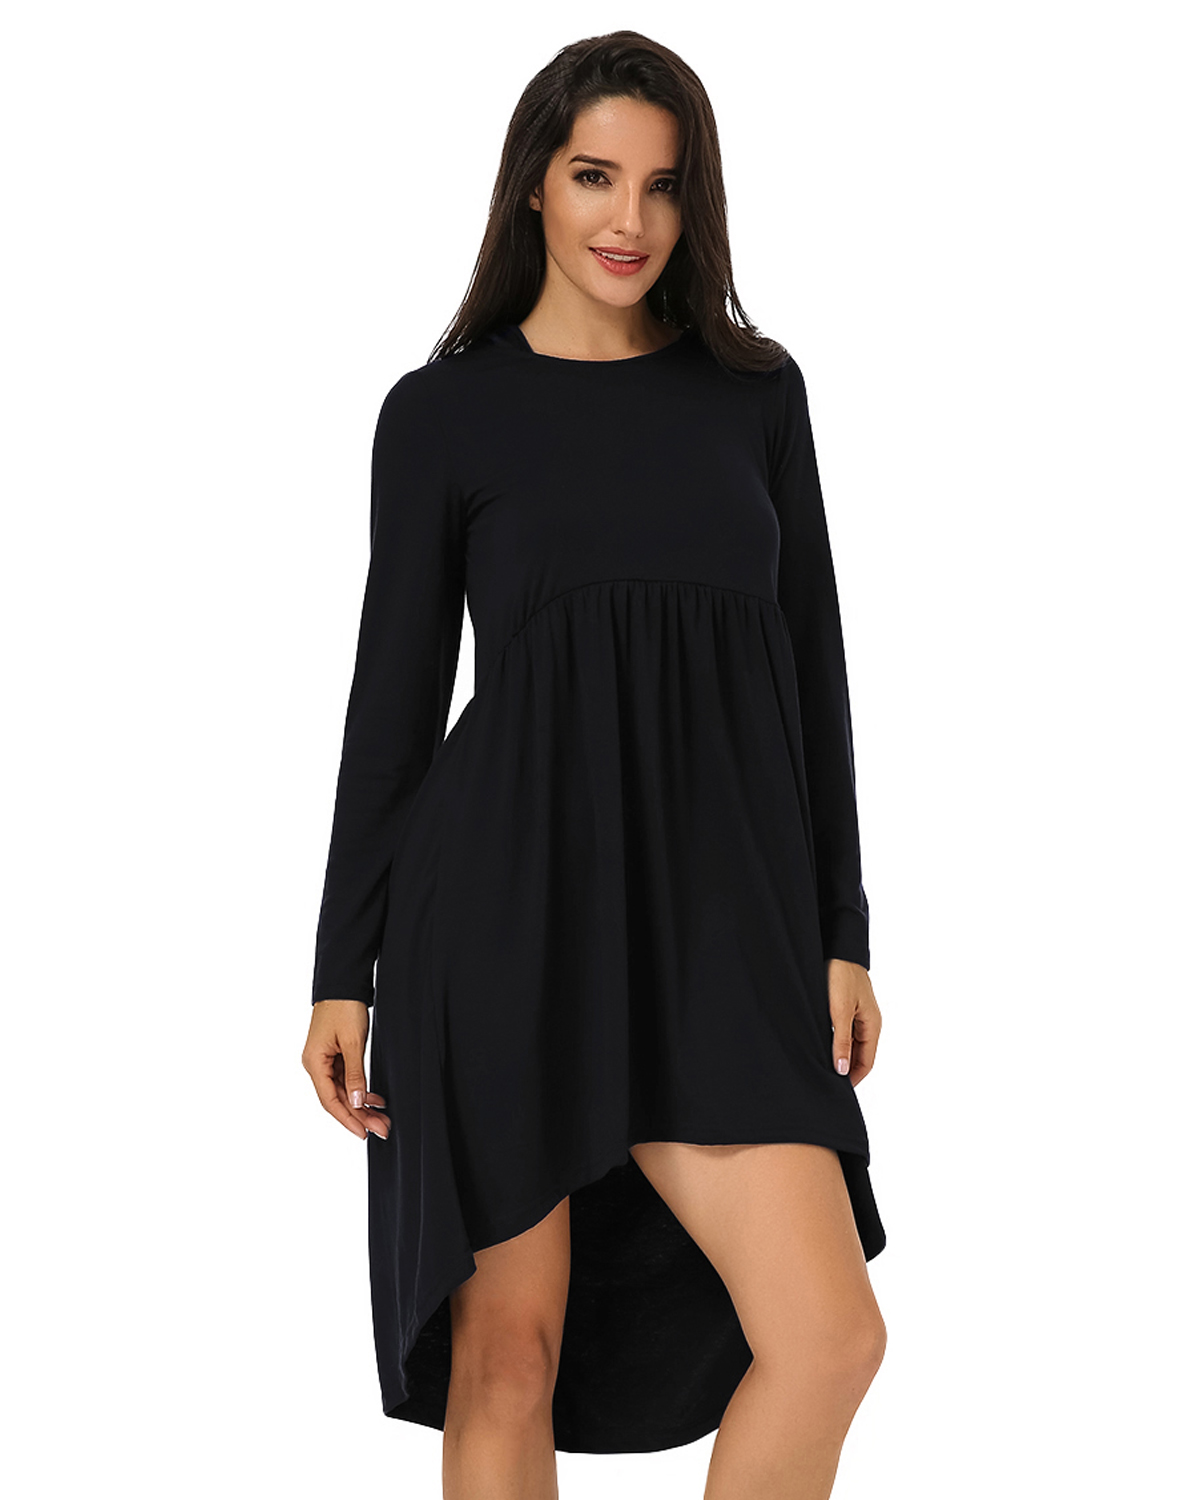 Plus Size Women Dresses Casual O Neck High Waist Mid-calf Long Sleeve Loose Solid Asymmetrical Elegant Party Dress Vestidos 2019